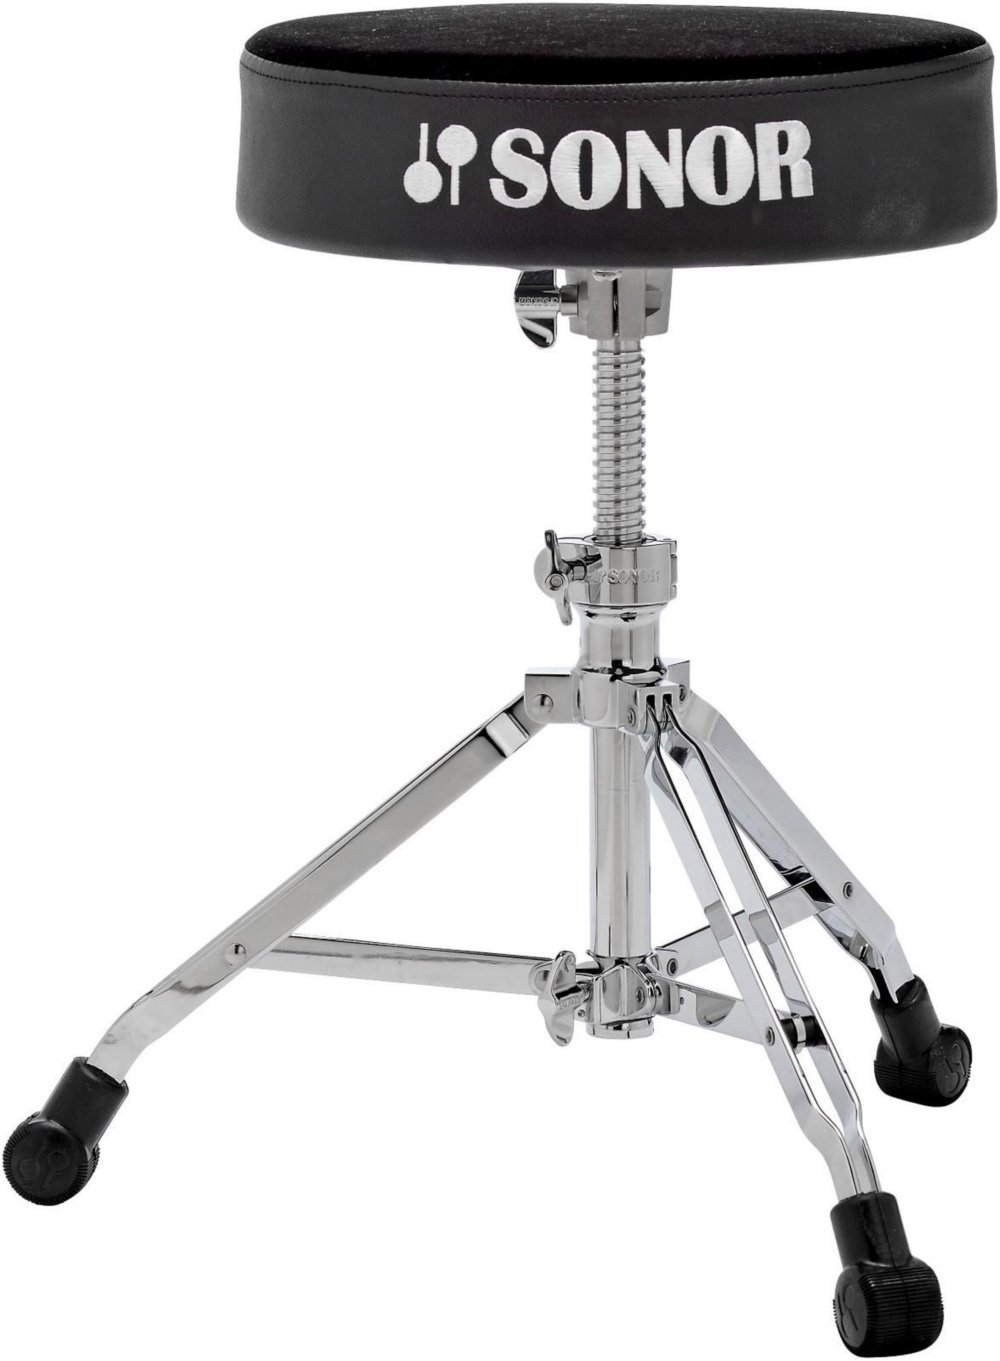 Sonor DT4000 Drum Throne 14527701